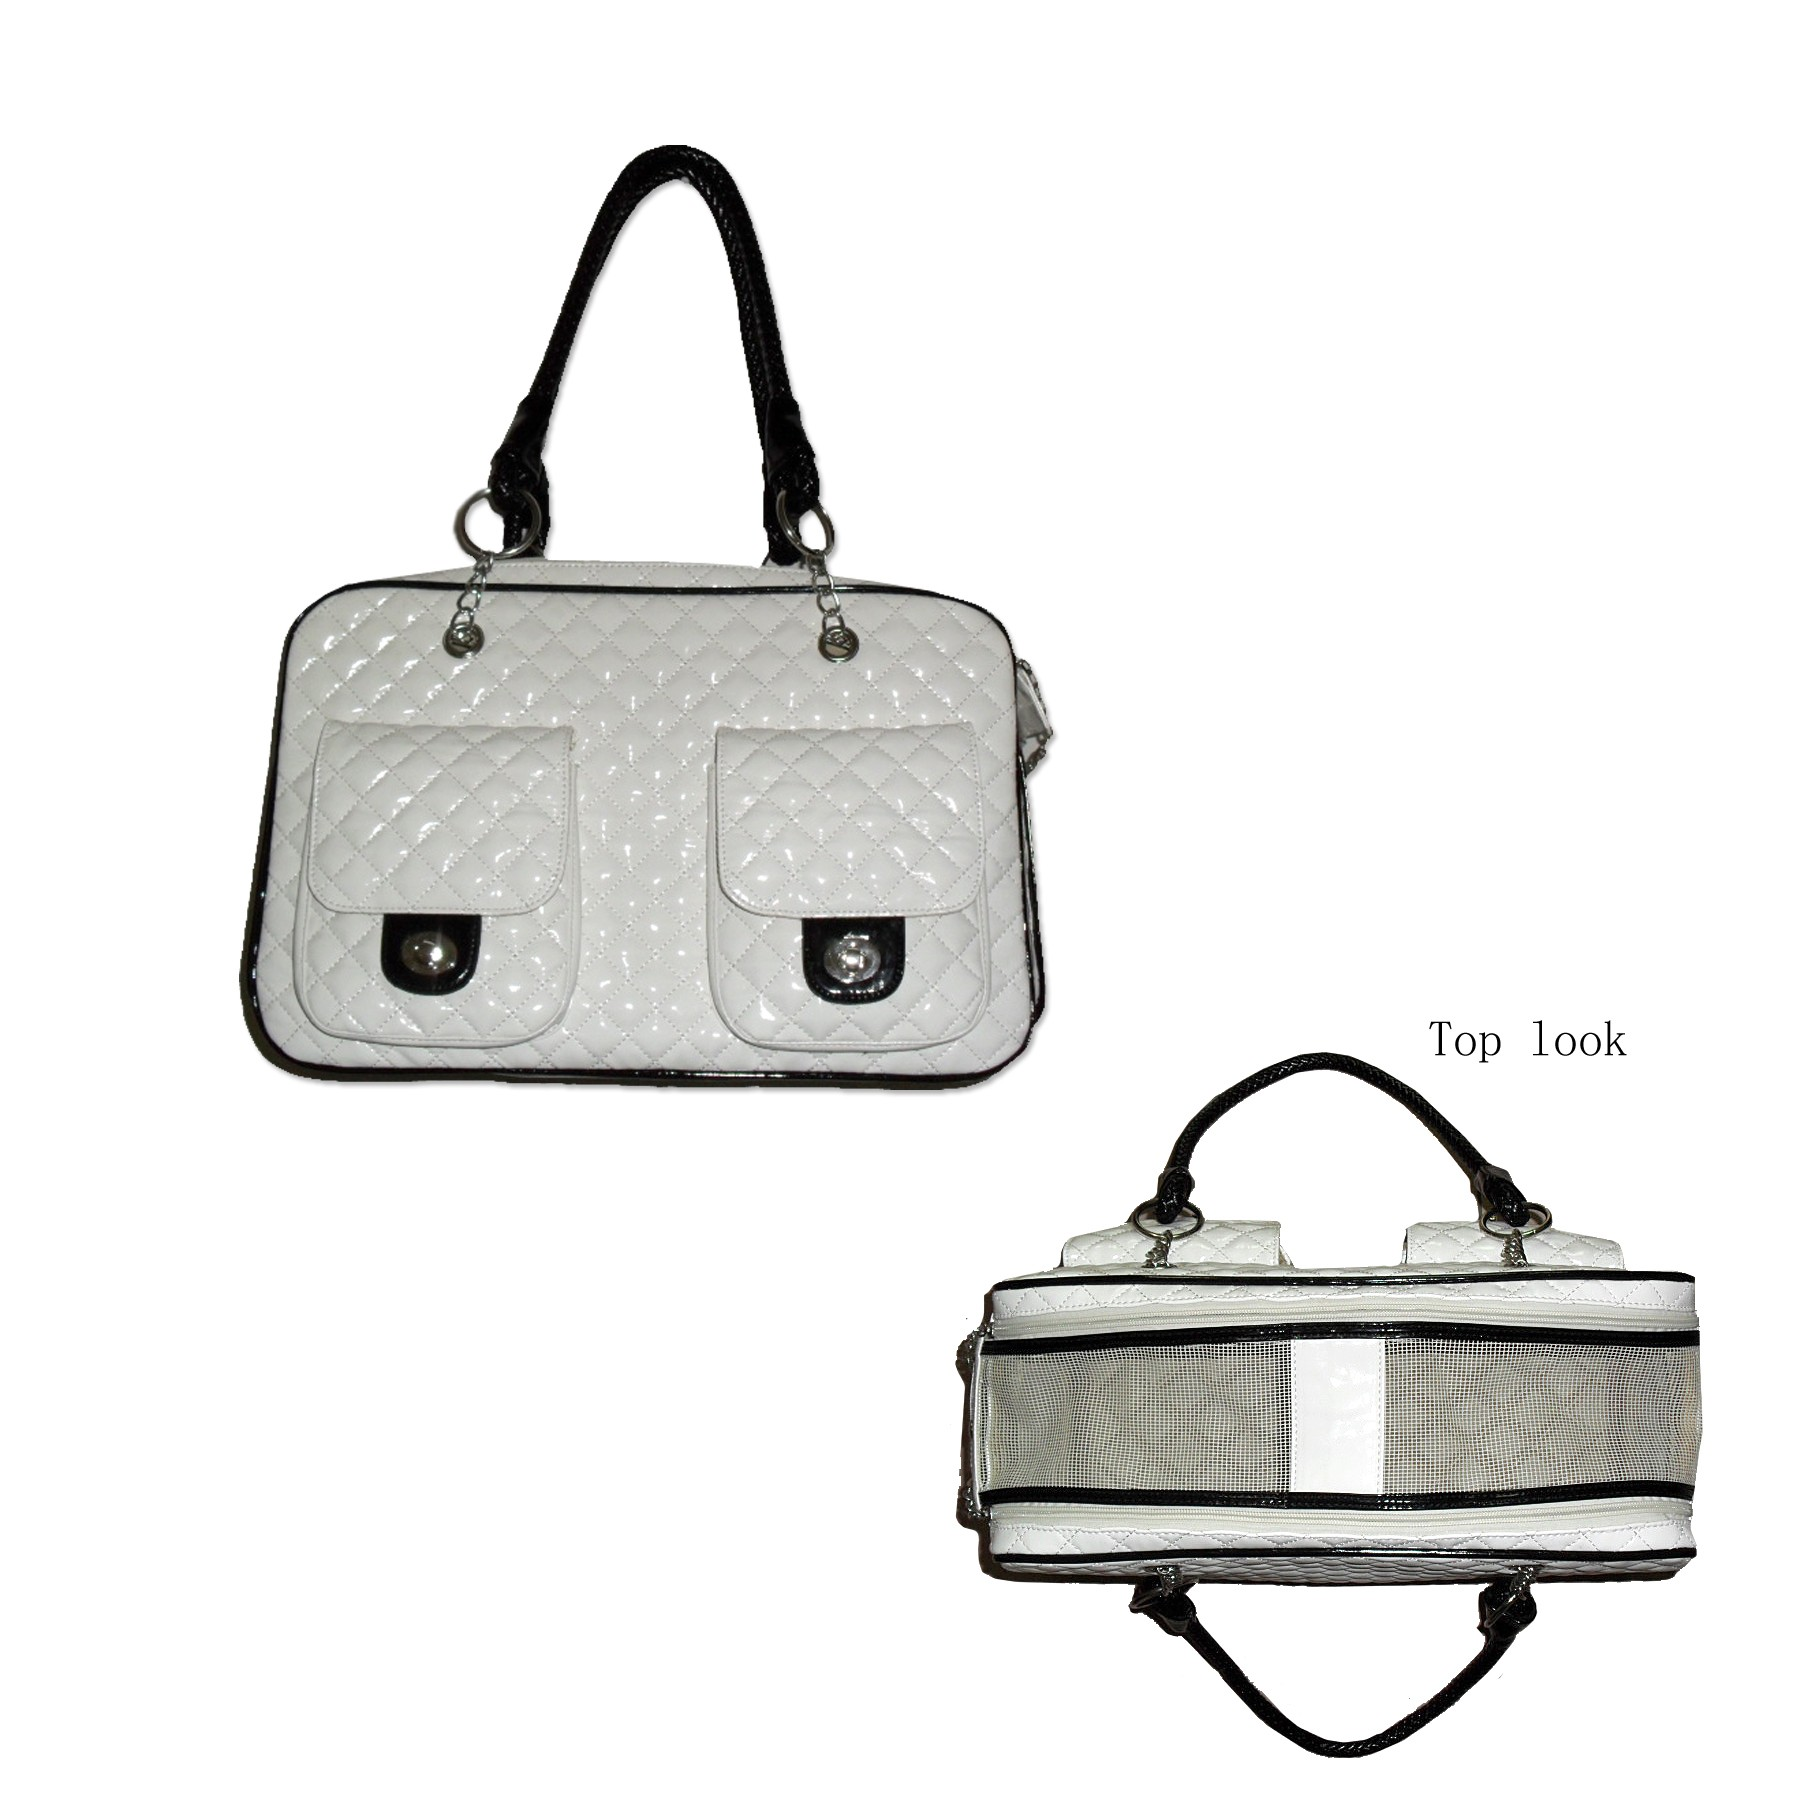 White quilted patent leather dog carrier handbag